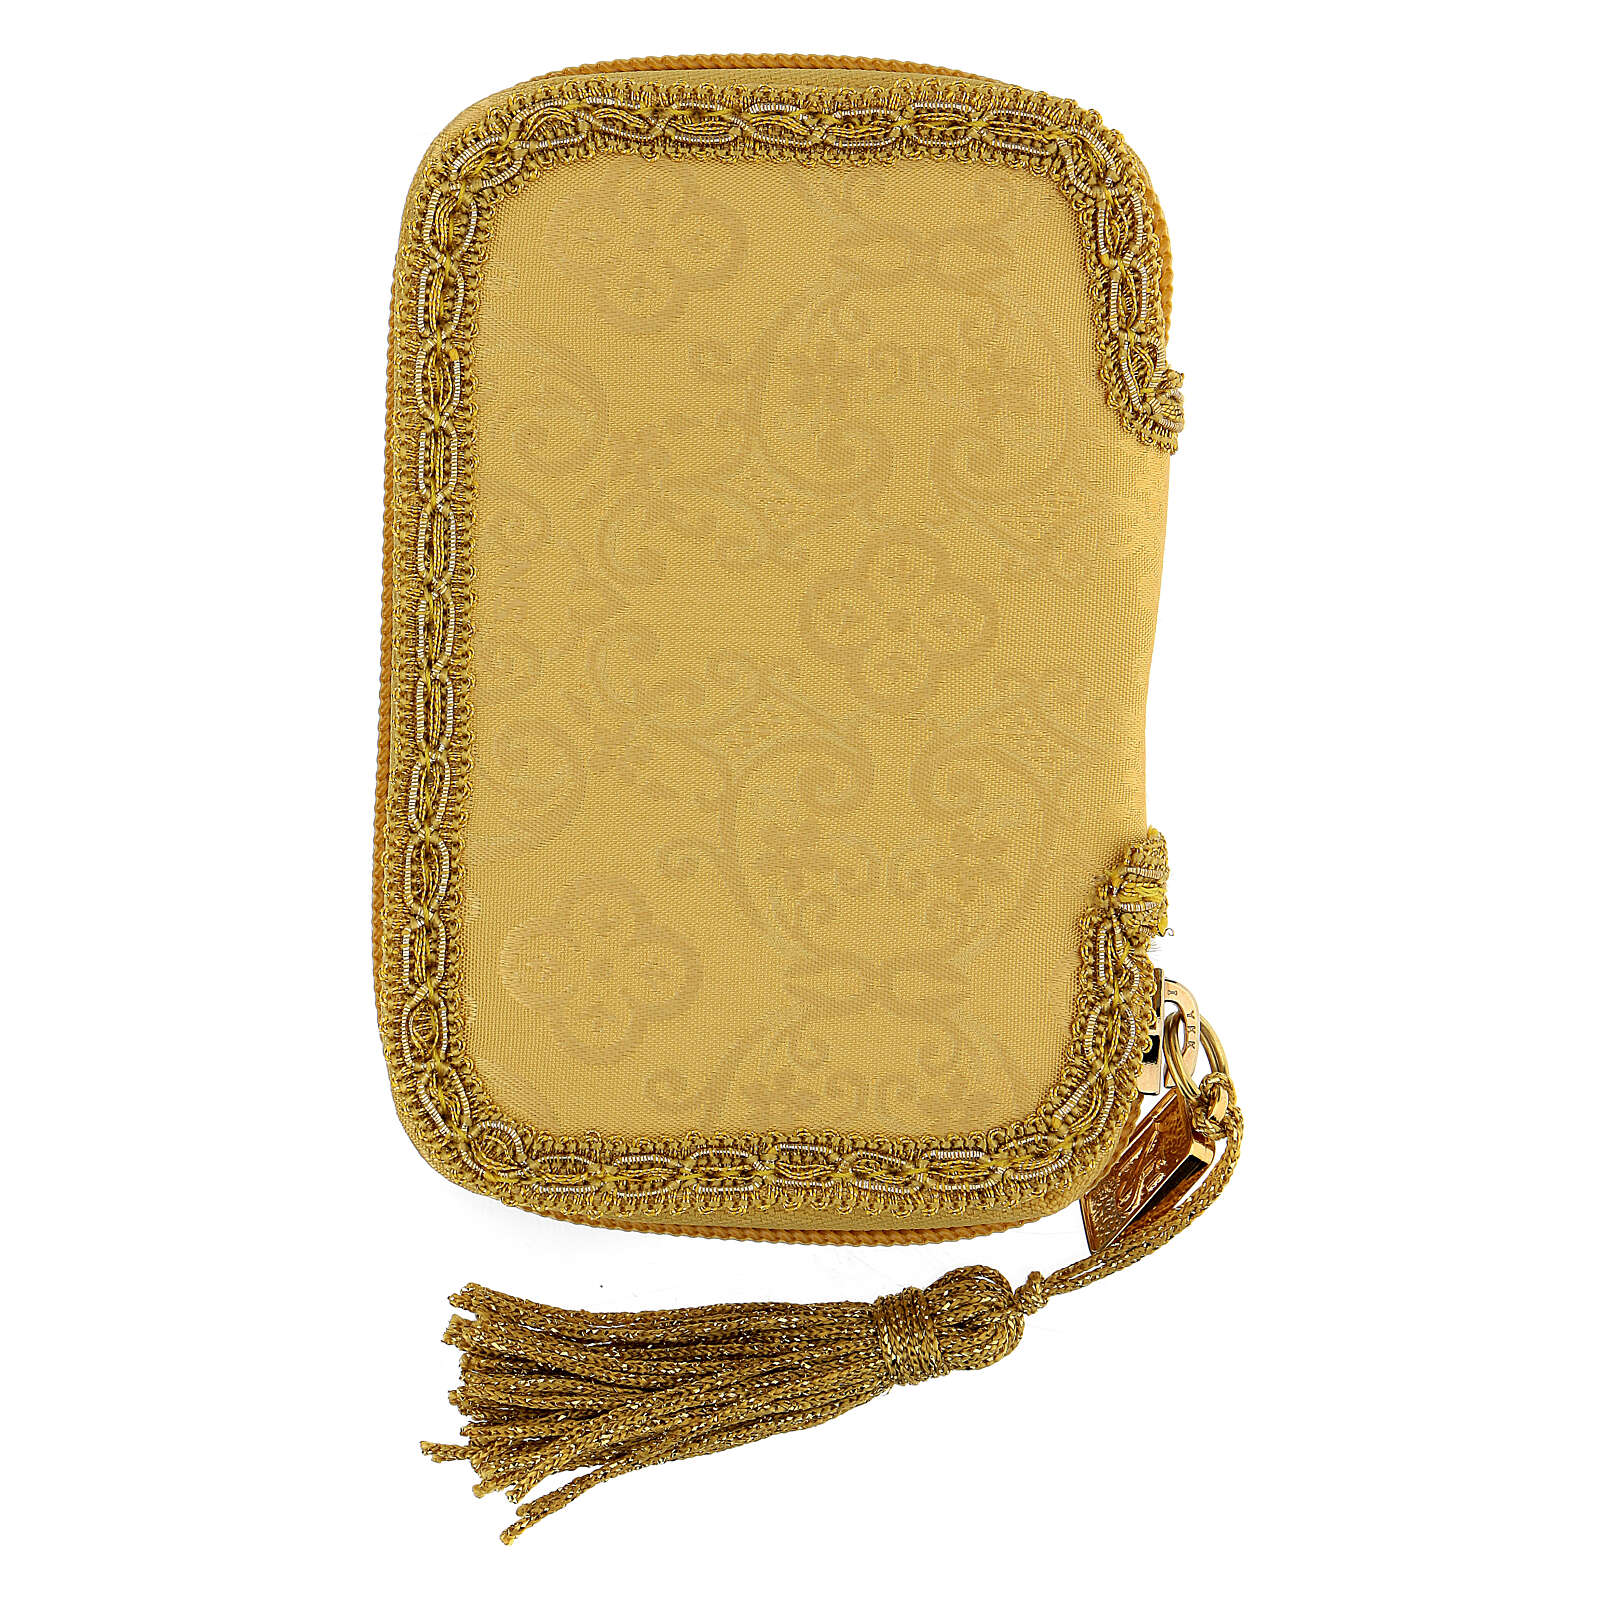 Our Lady of Guadalupe golden burse with 2 in pyx 3